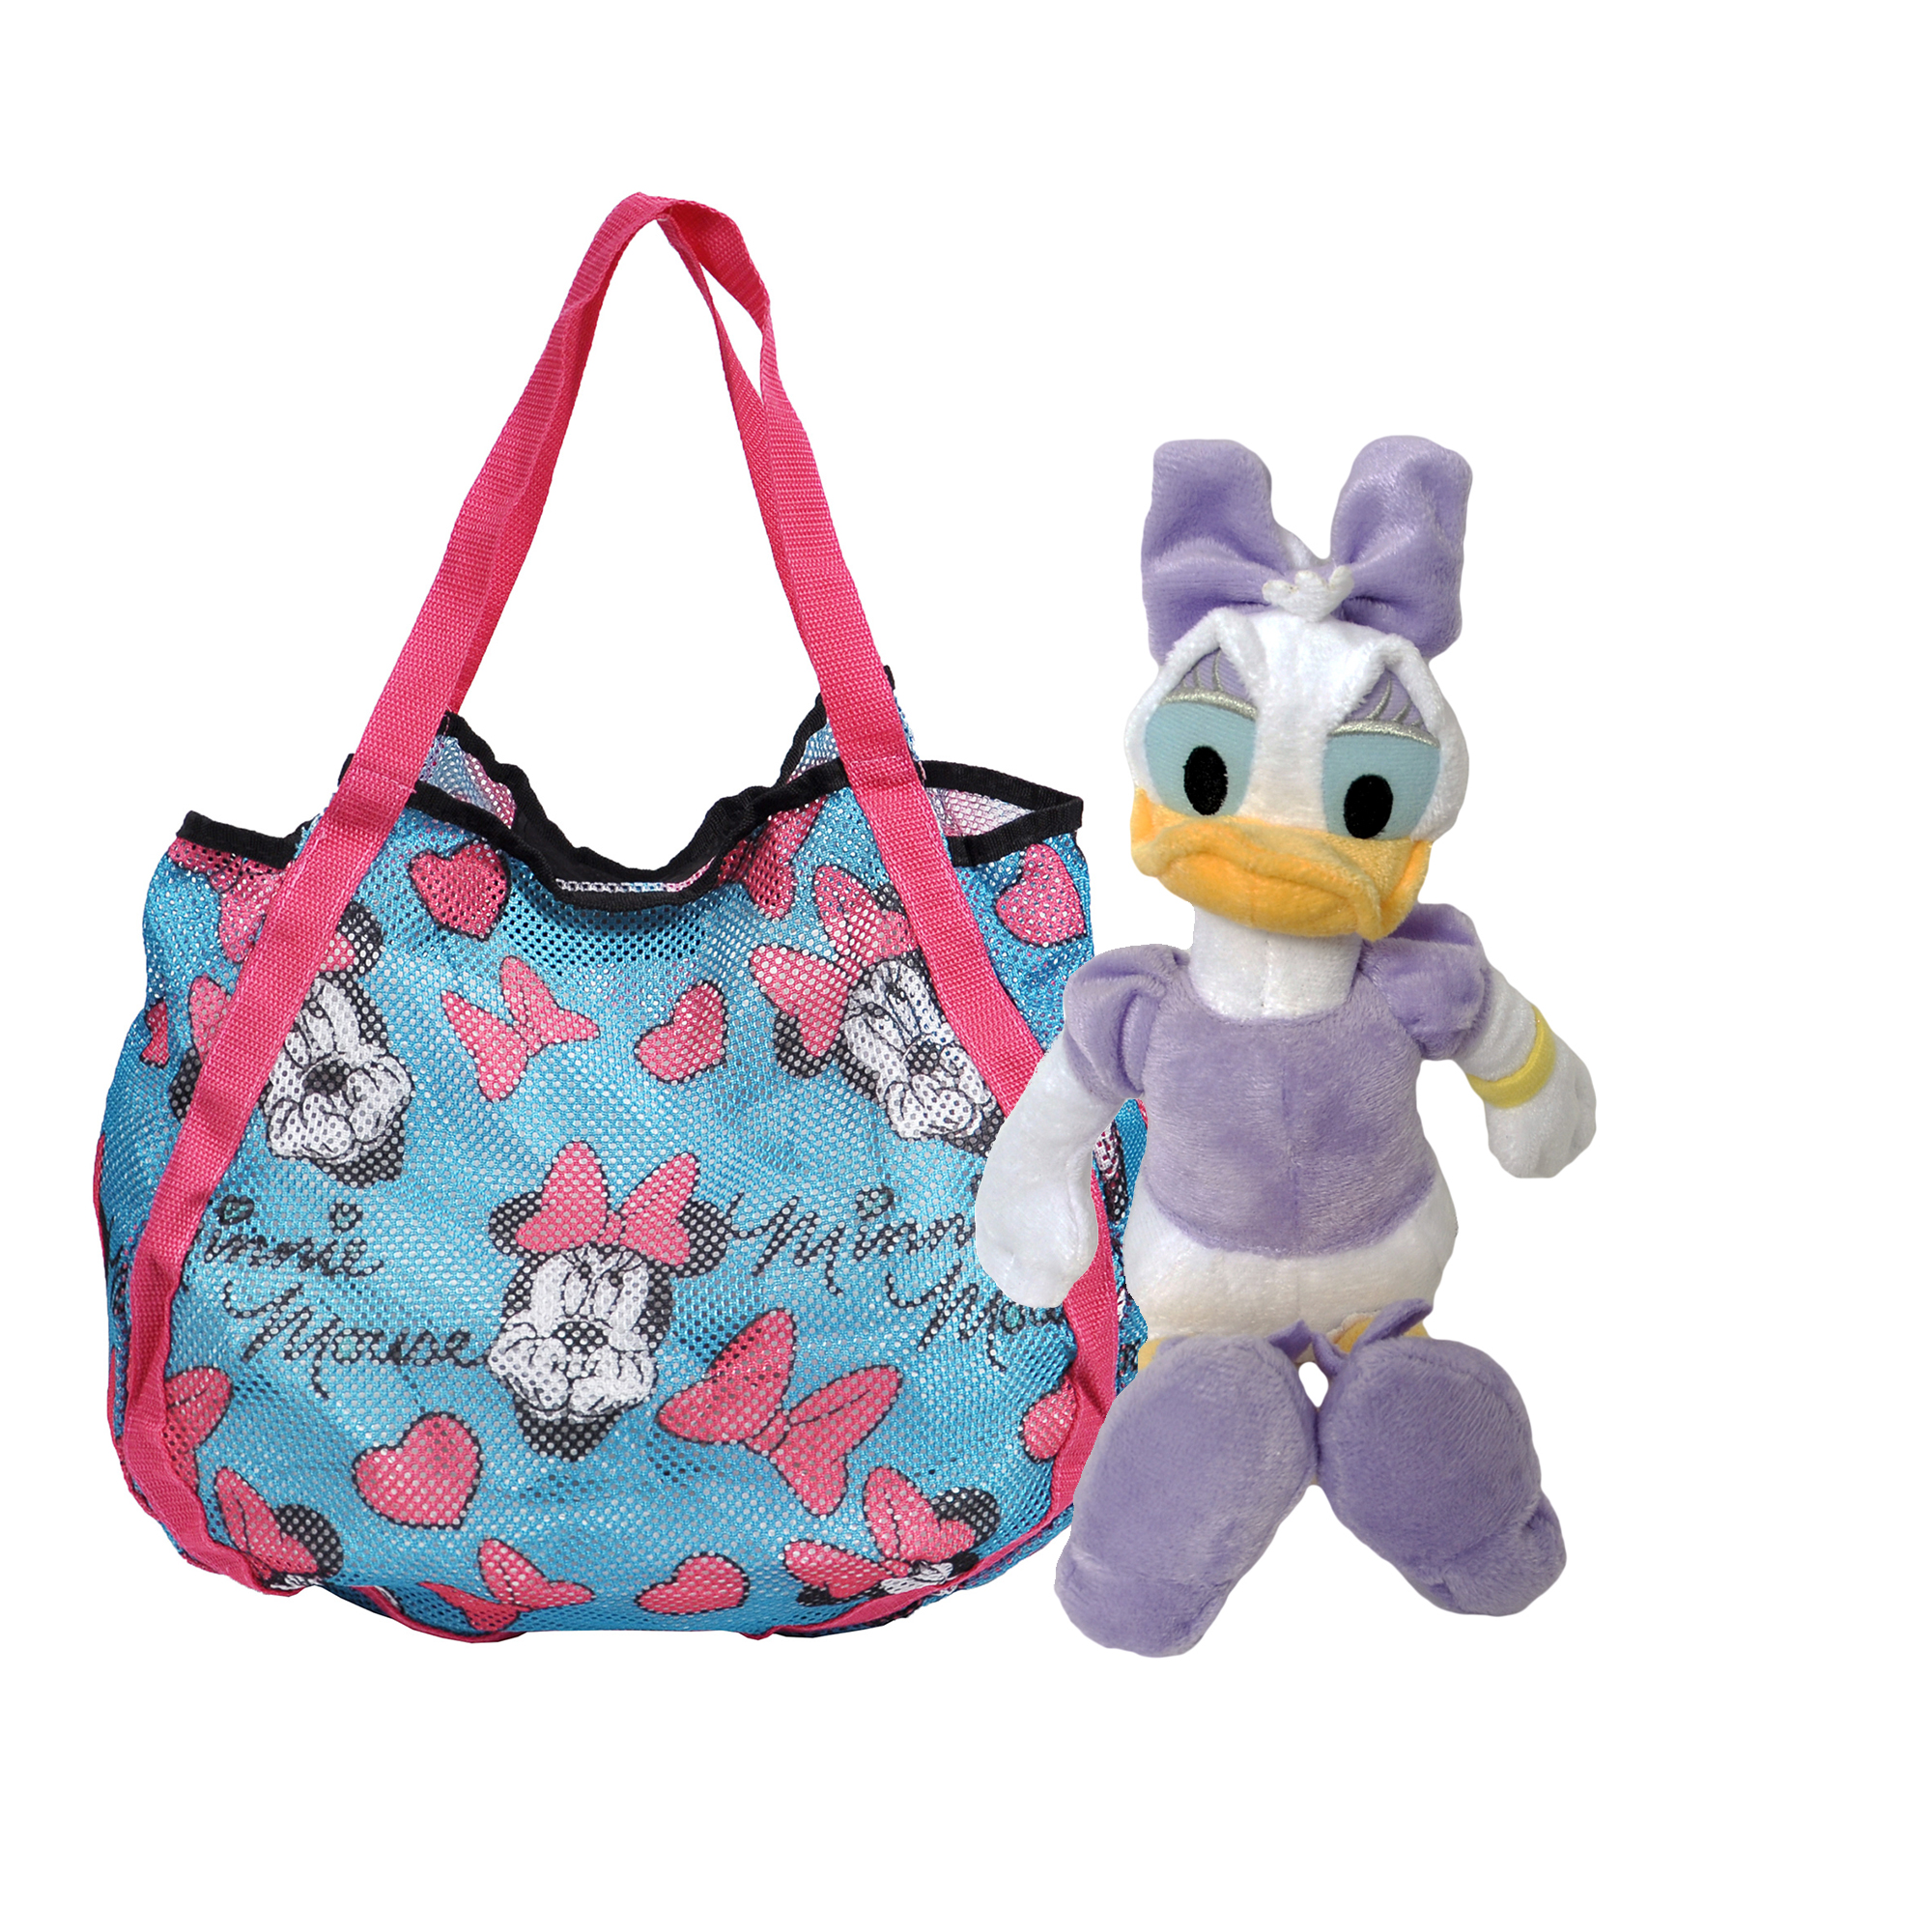 Minnie Mouse Shopping Tote Bag & Daisy Duck Plush Doll 11""